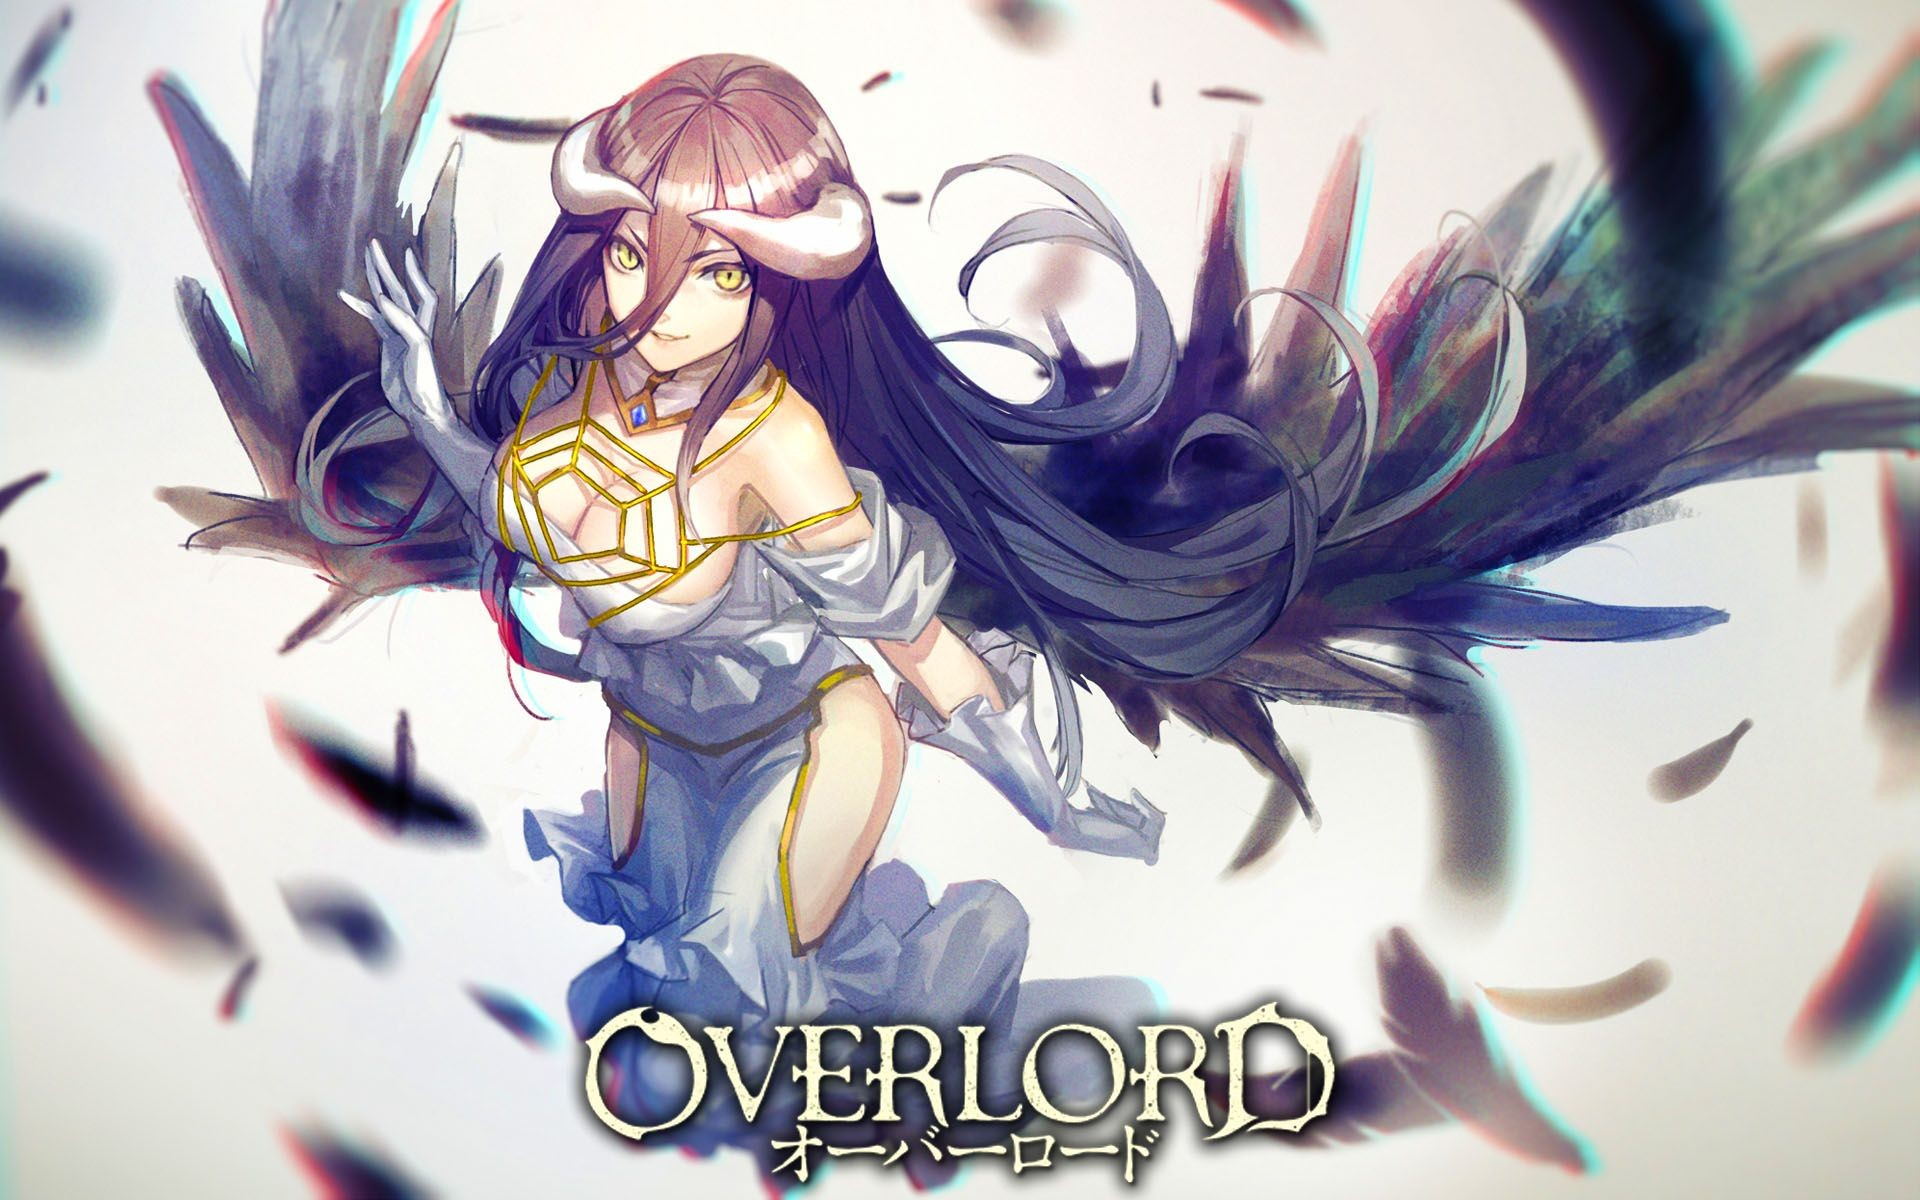 Res: 1920x1200, Overlord Albedo HD Wallpaper